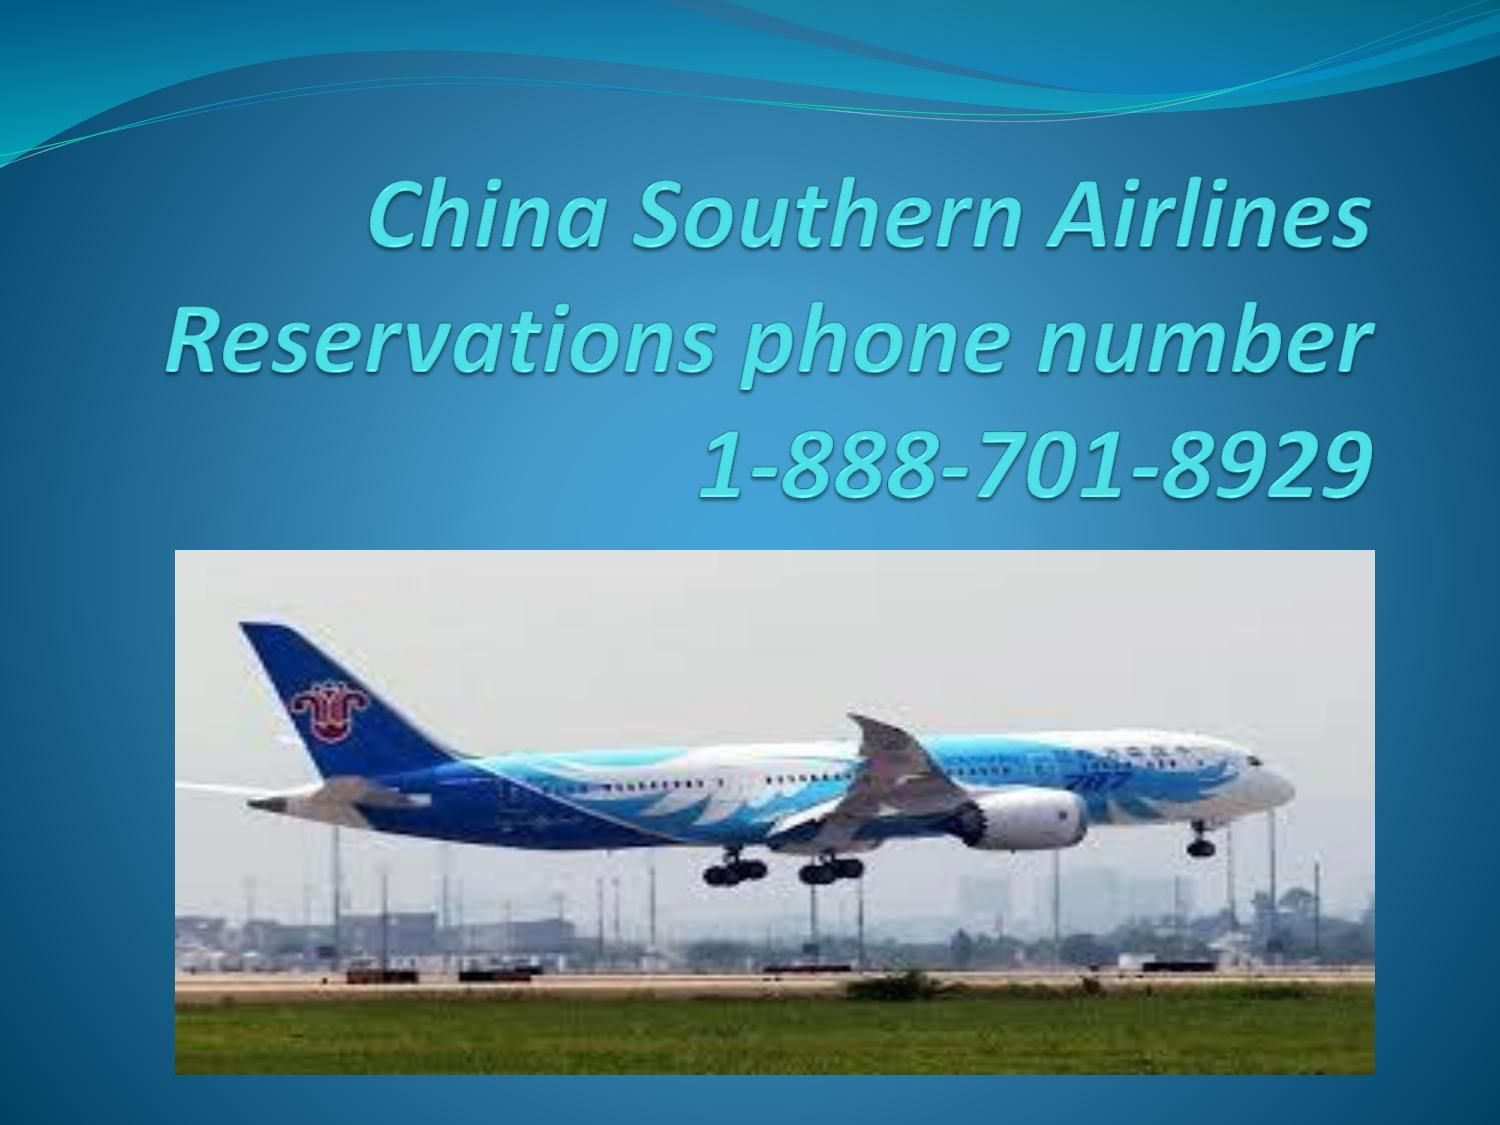 China Southern Airlines reservations phone number 1888